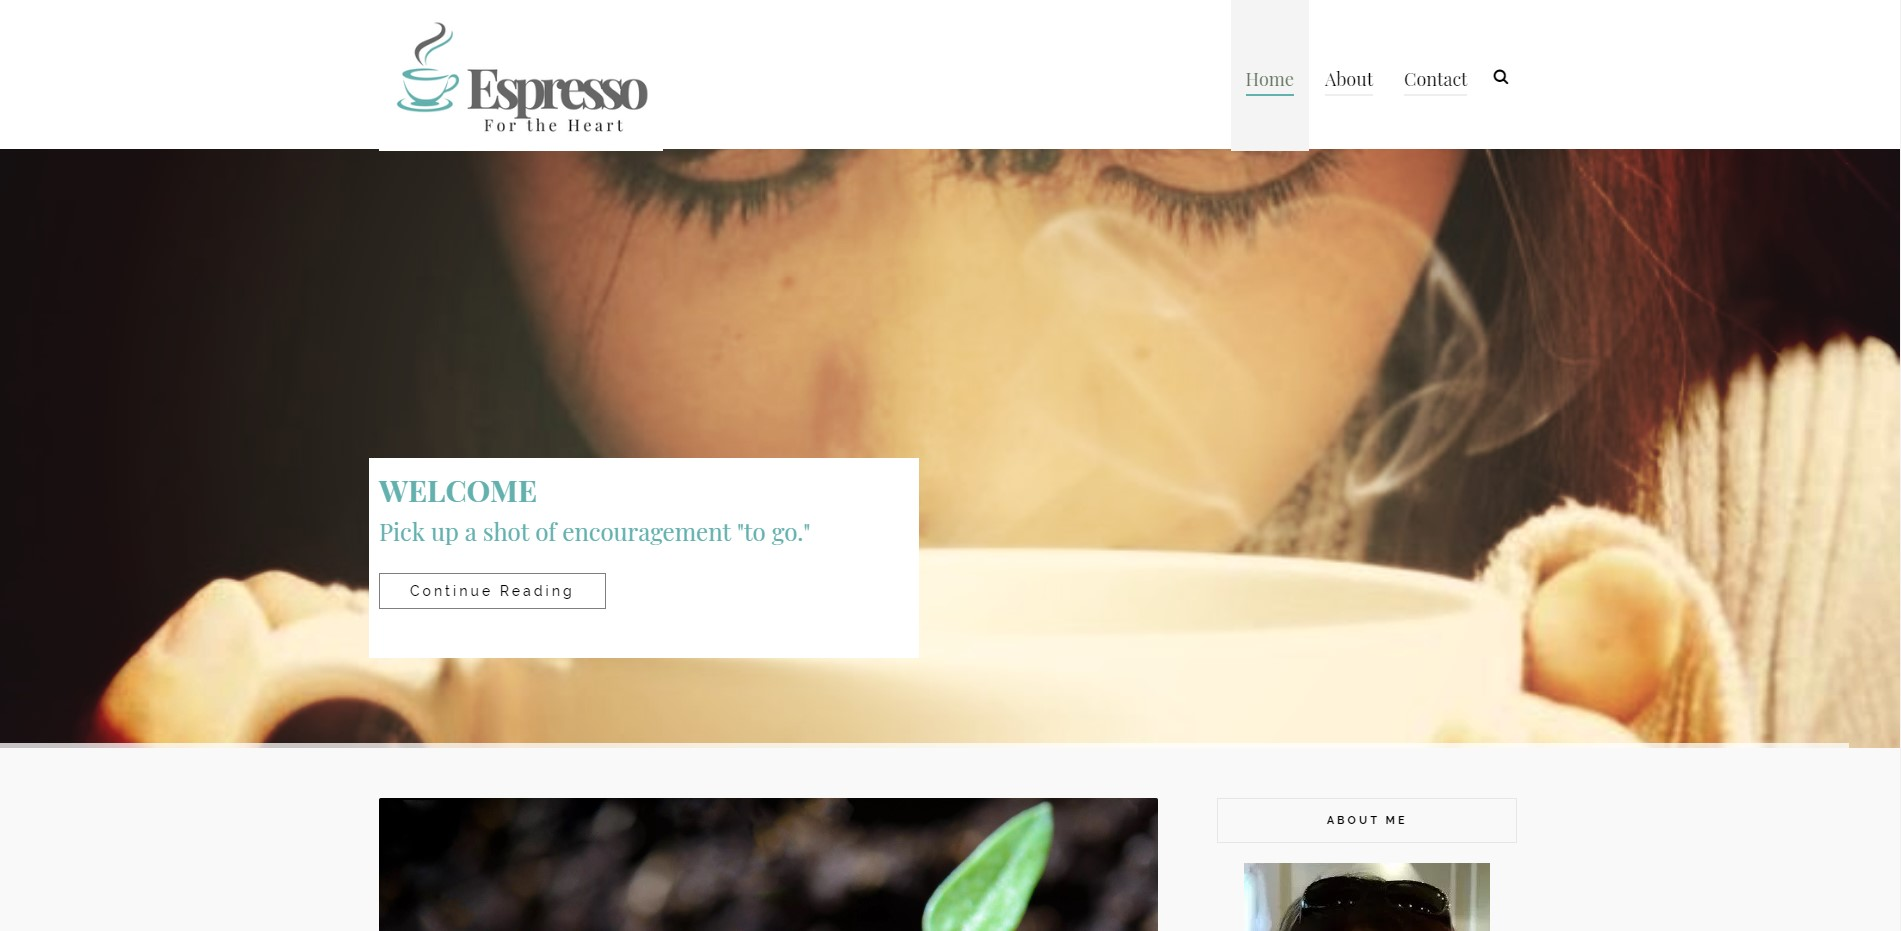 Espresso for The Heart website designed by JH Web Design